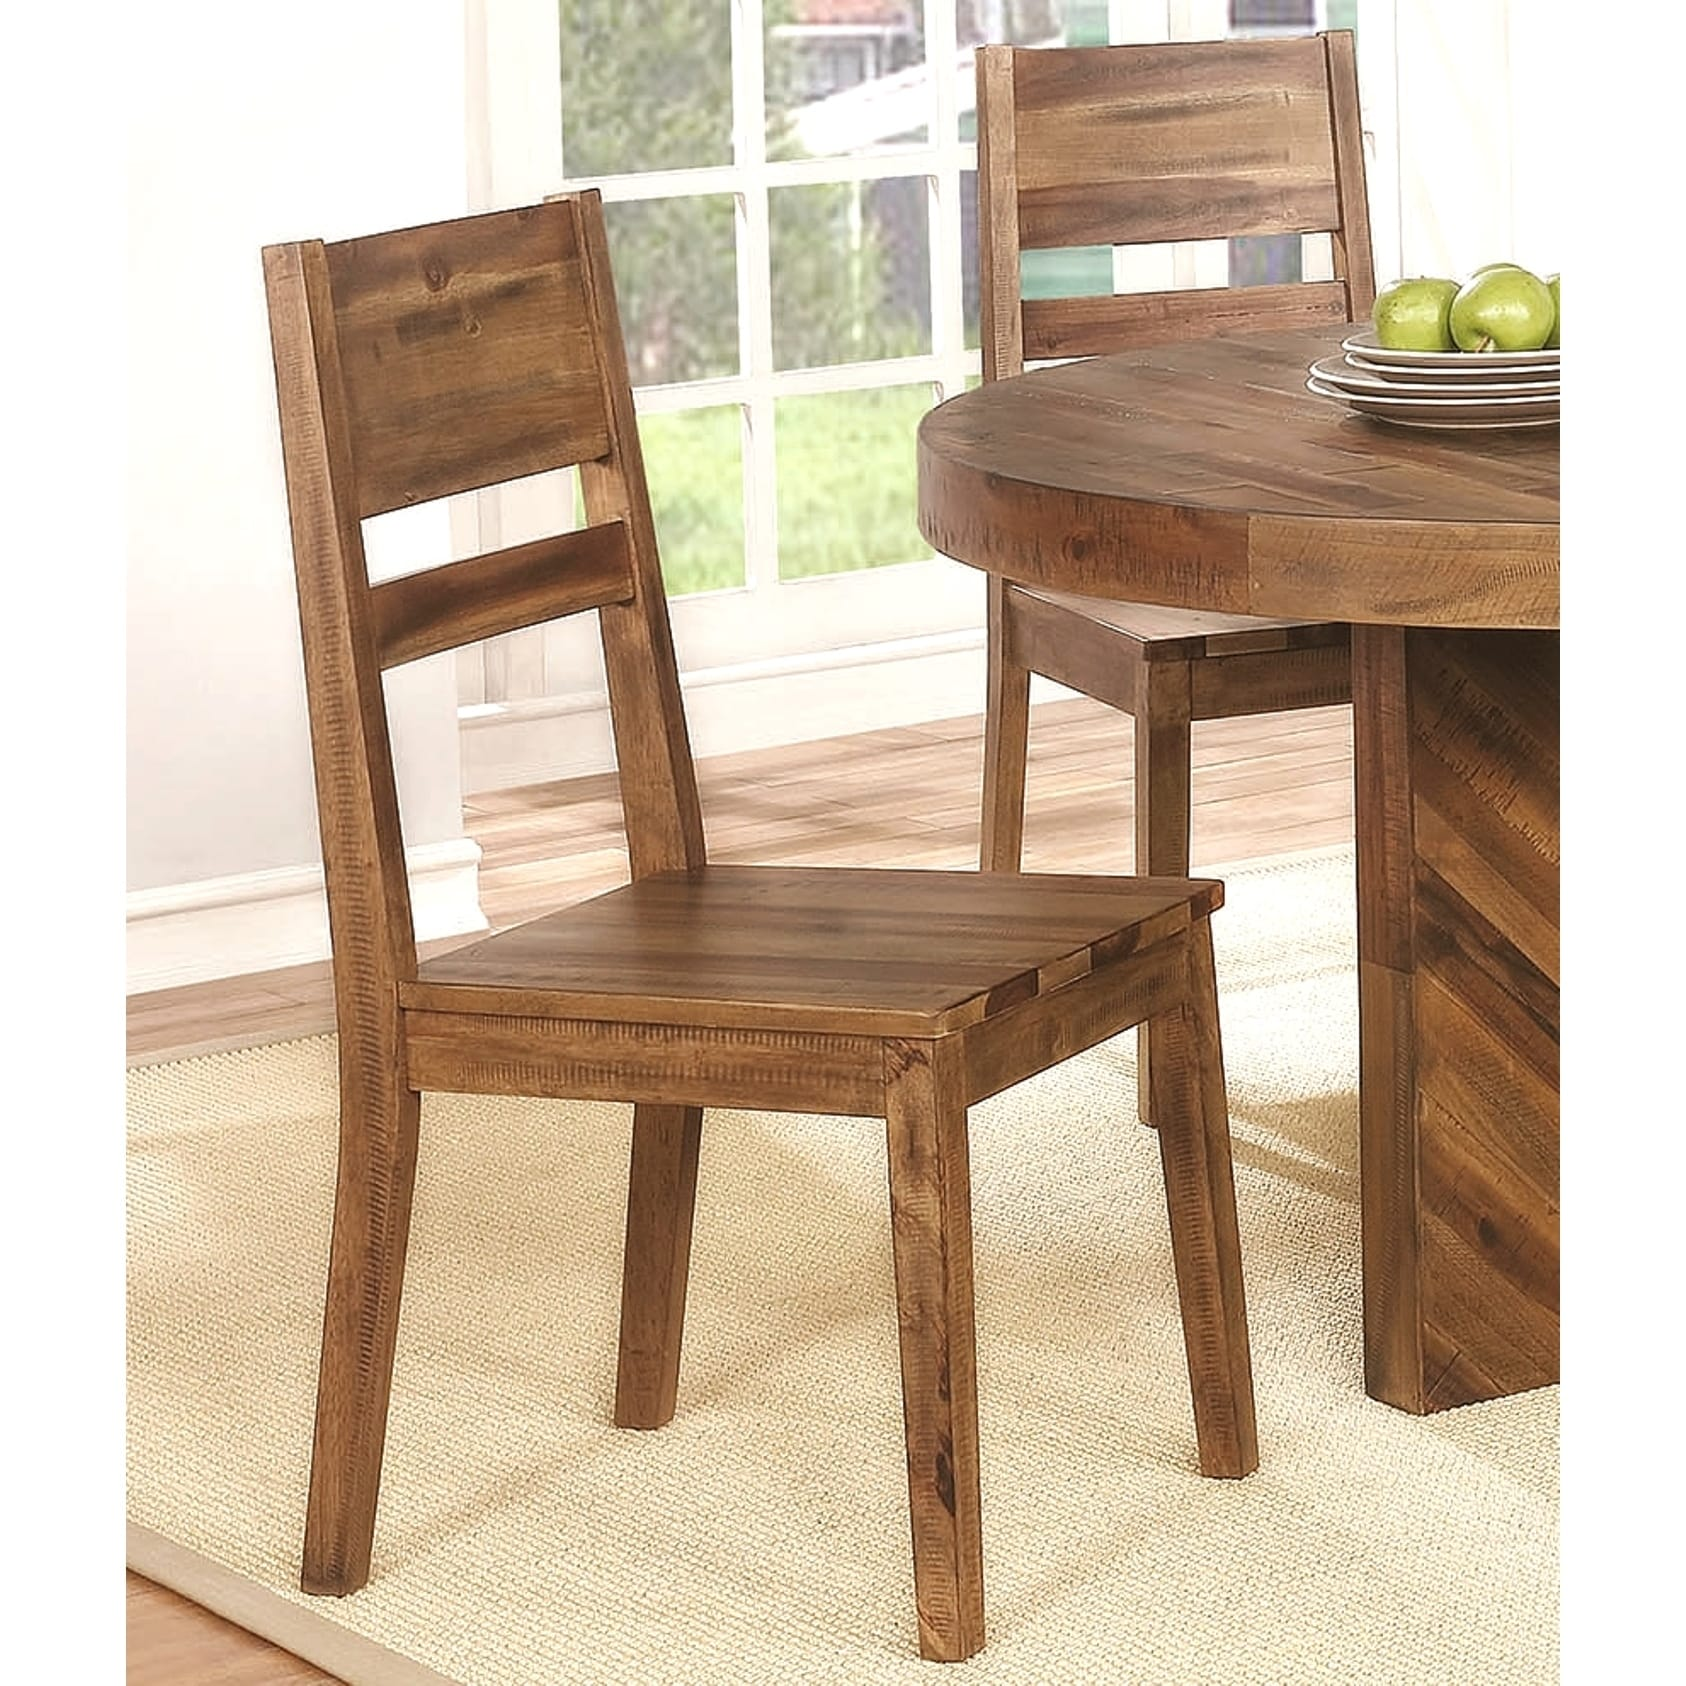 Fabulous Modern Reclaimed Natural Wood Design Dining Chairs Set Of 2 Ibusinesslaw Wood Chair Design Ideas Ibusinesslaworg